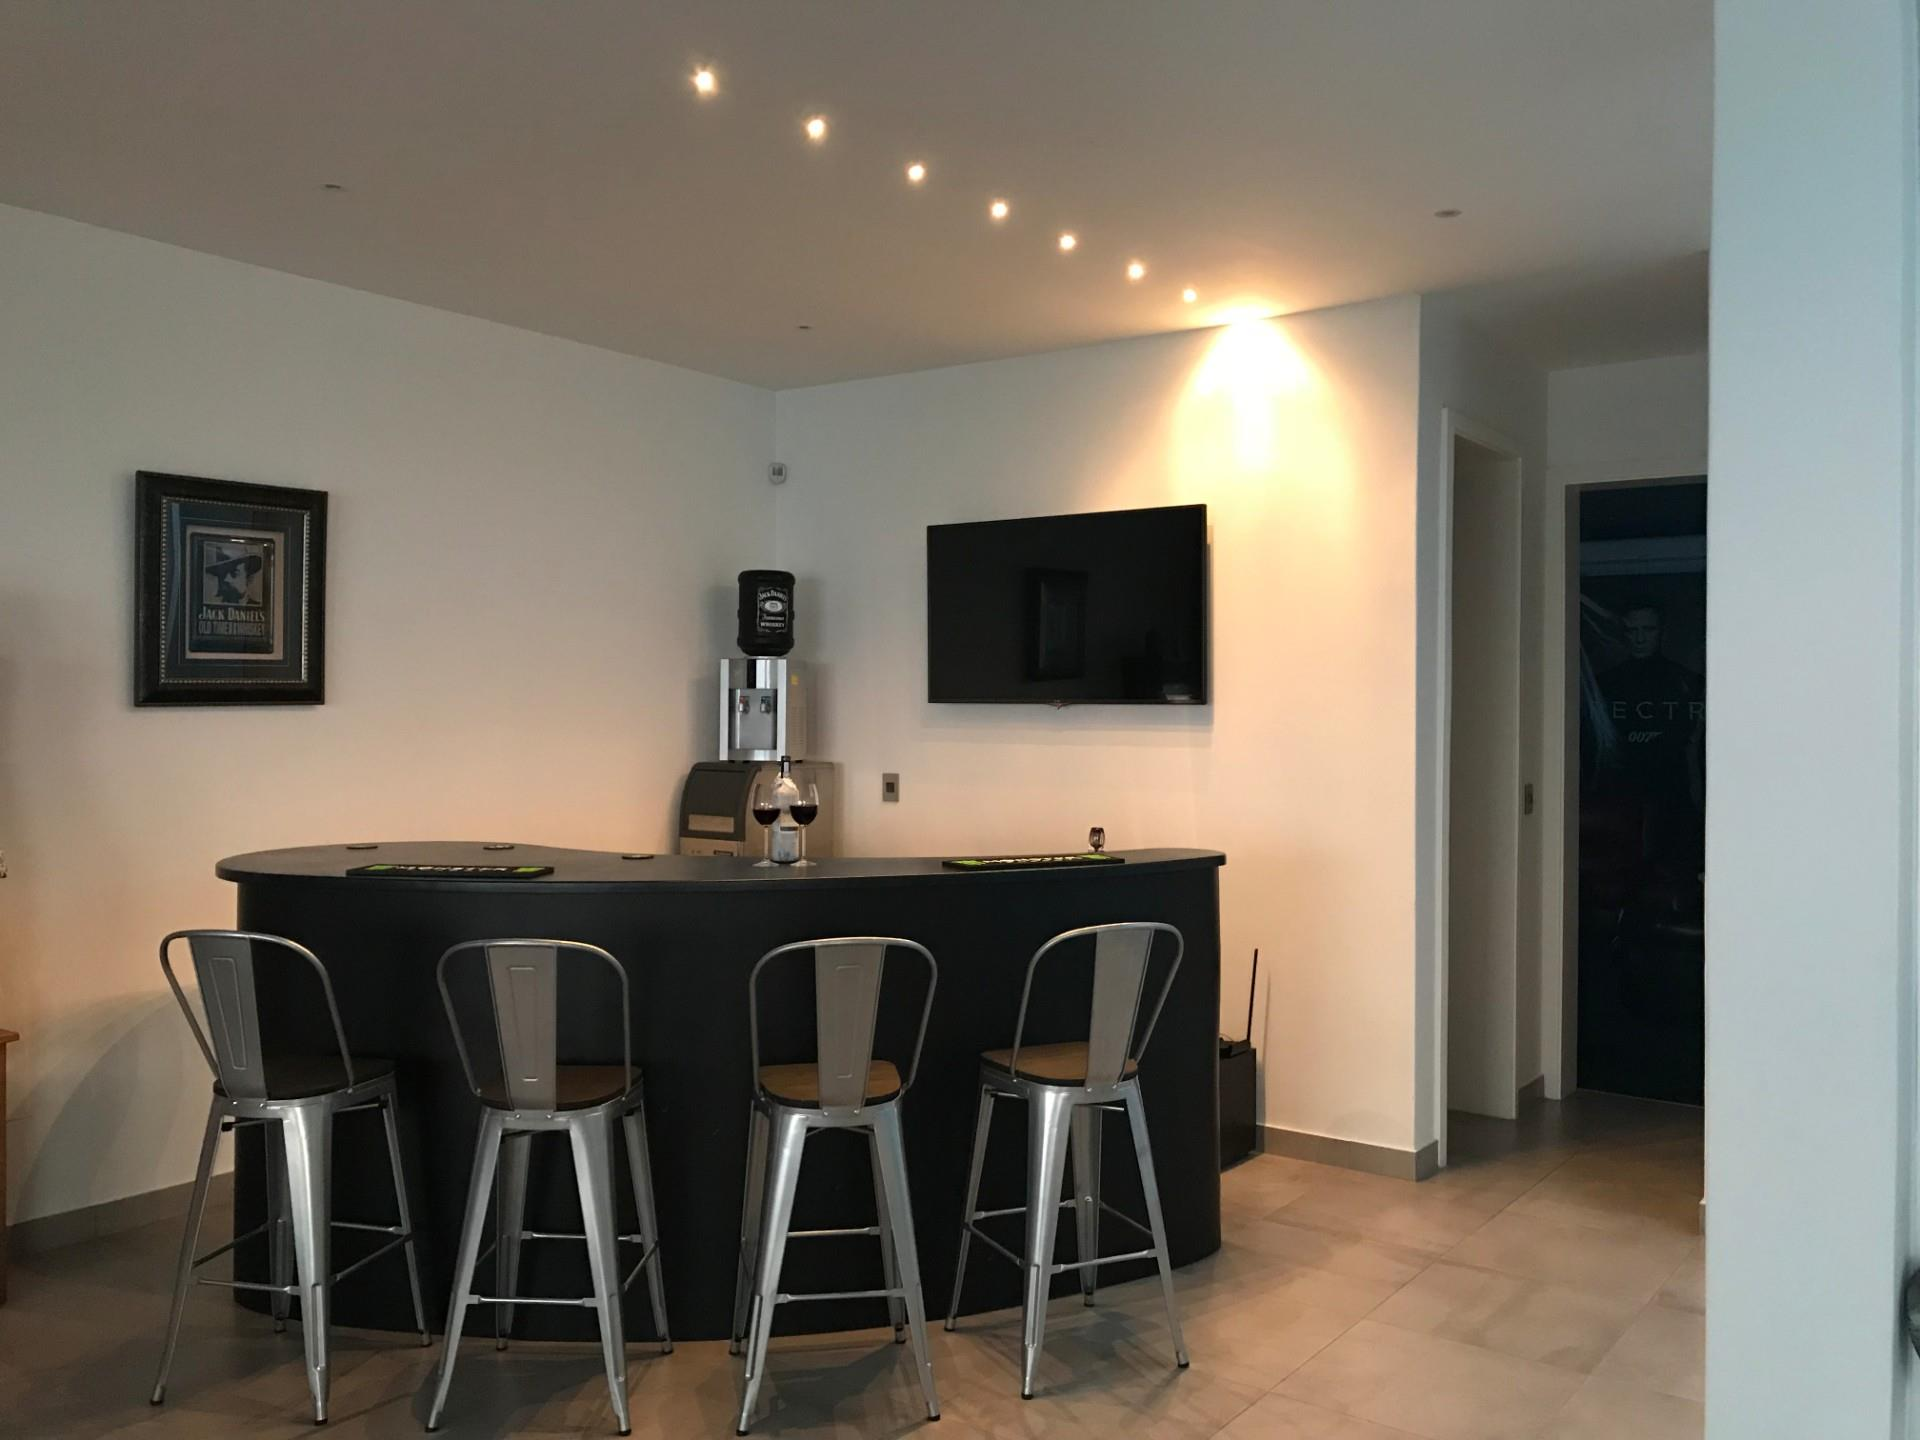 4 Bedroom House For Sale in Long beach